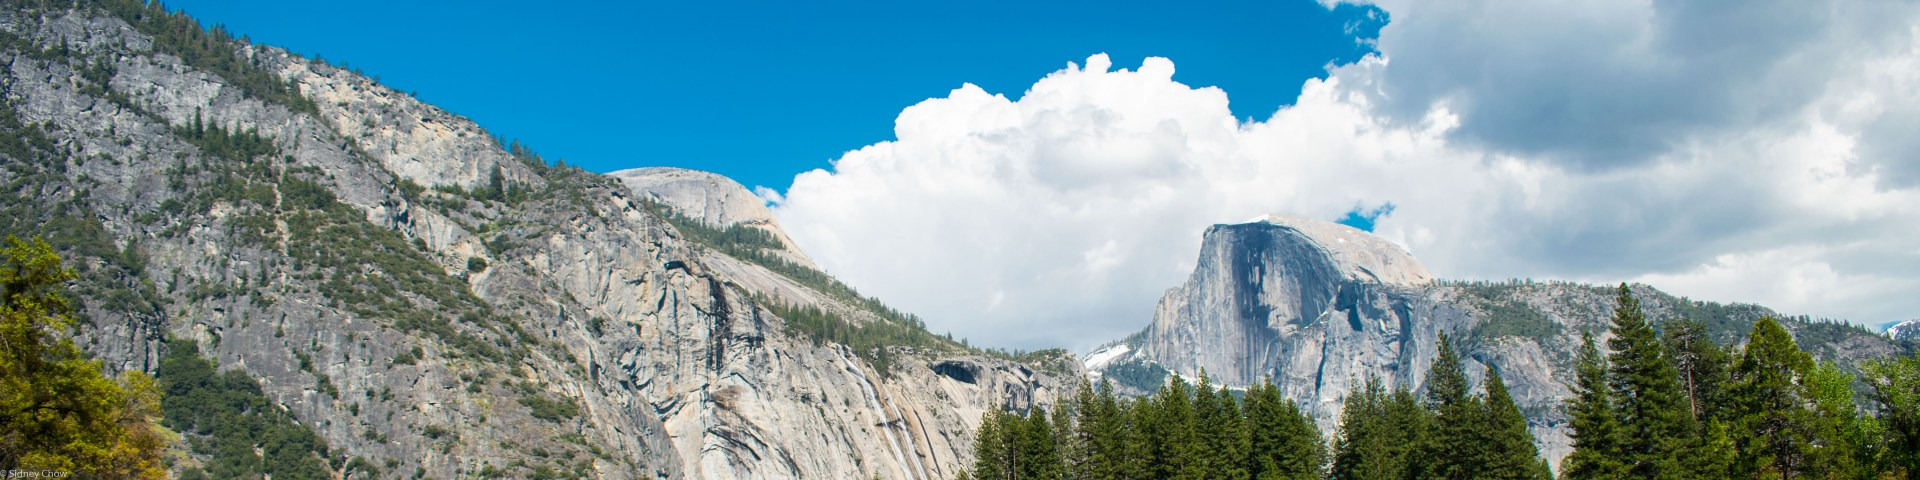 Yosemite National Park Part 2 Featured Photo